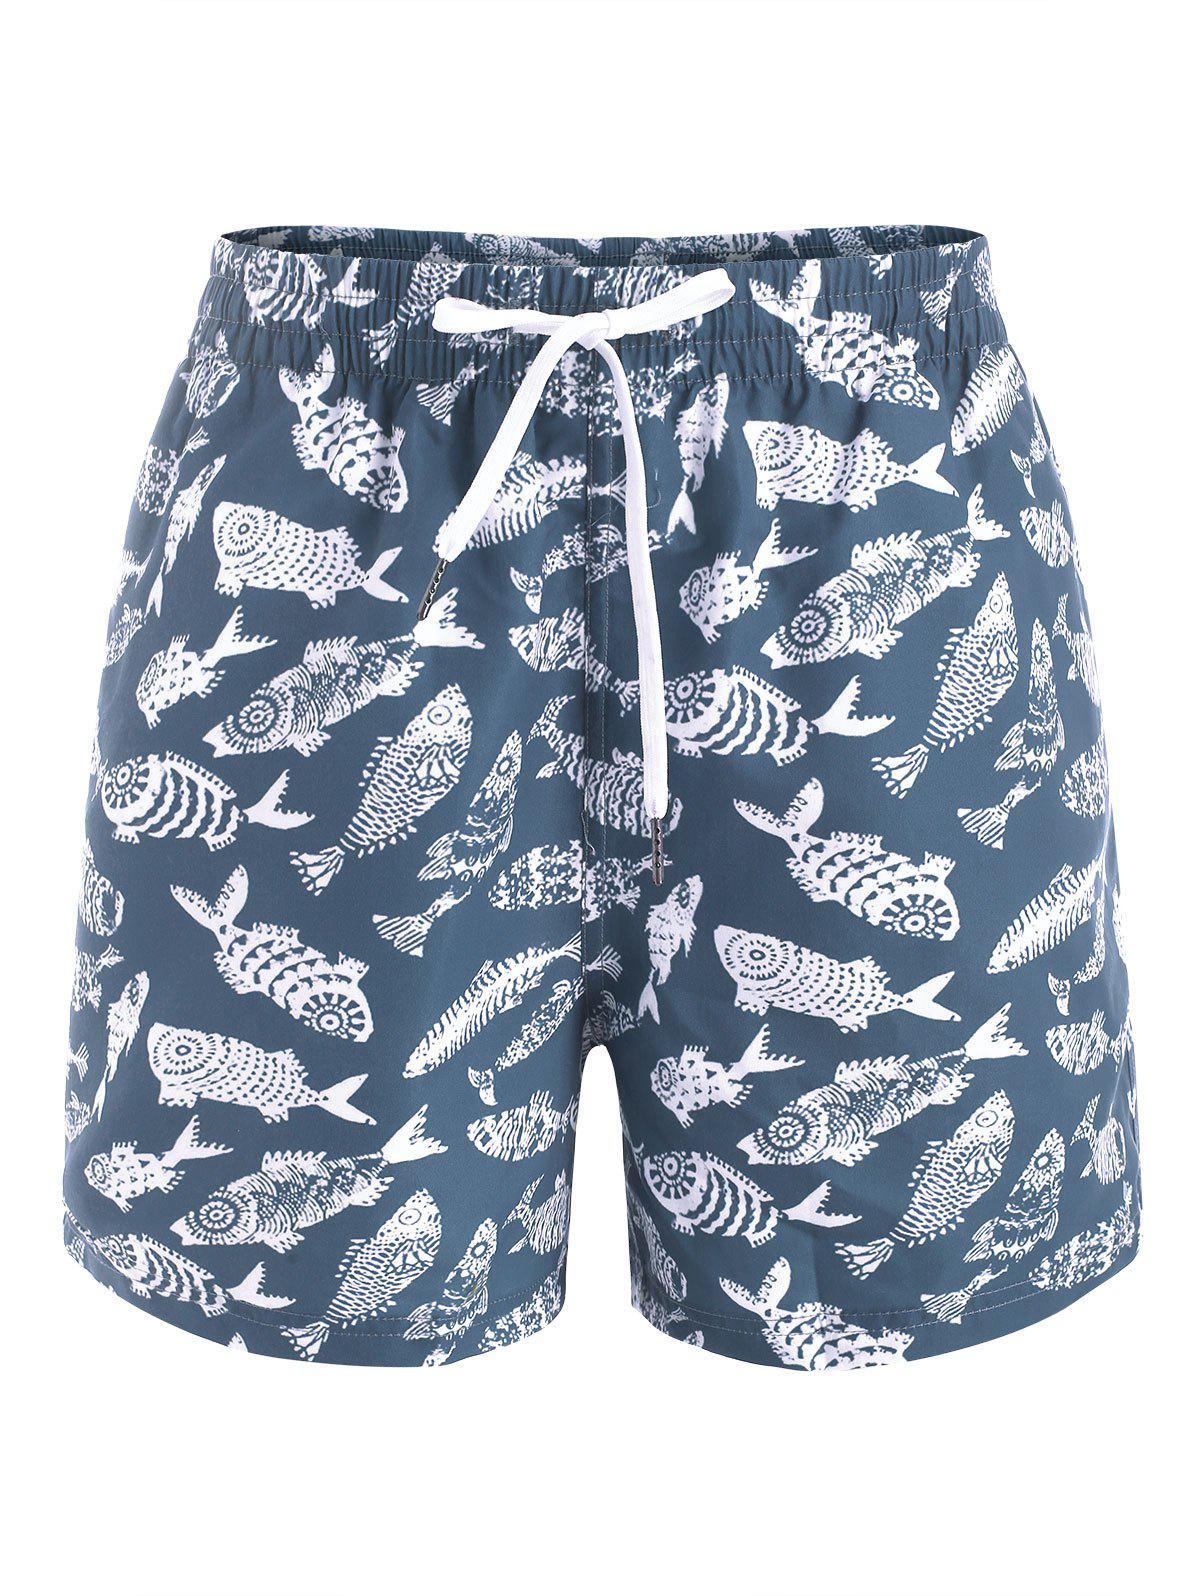 Fish Allover Print Casual Shorts - MARBLE BLUE M